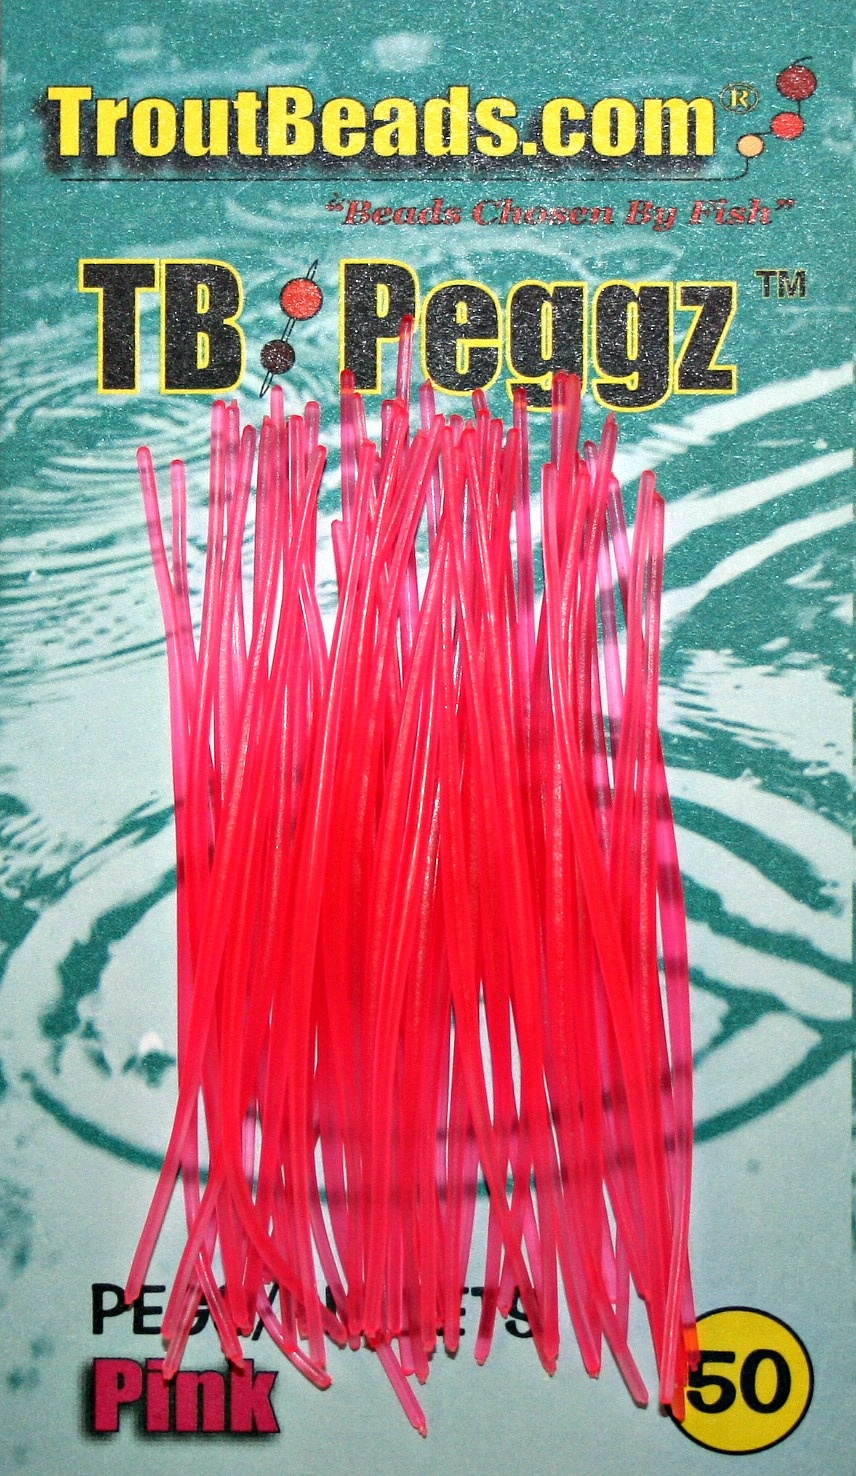 Troutbeads Peggz - 50 Pack